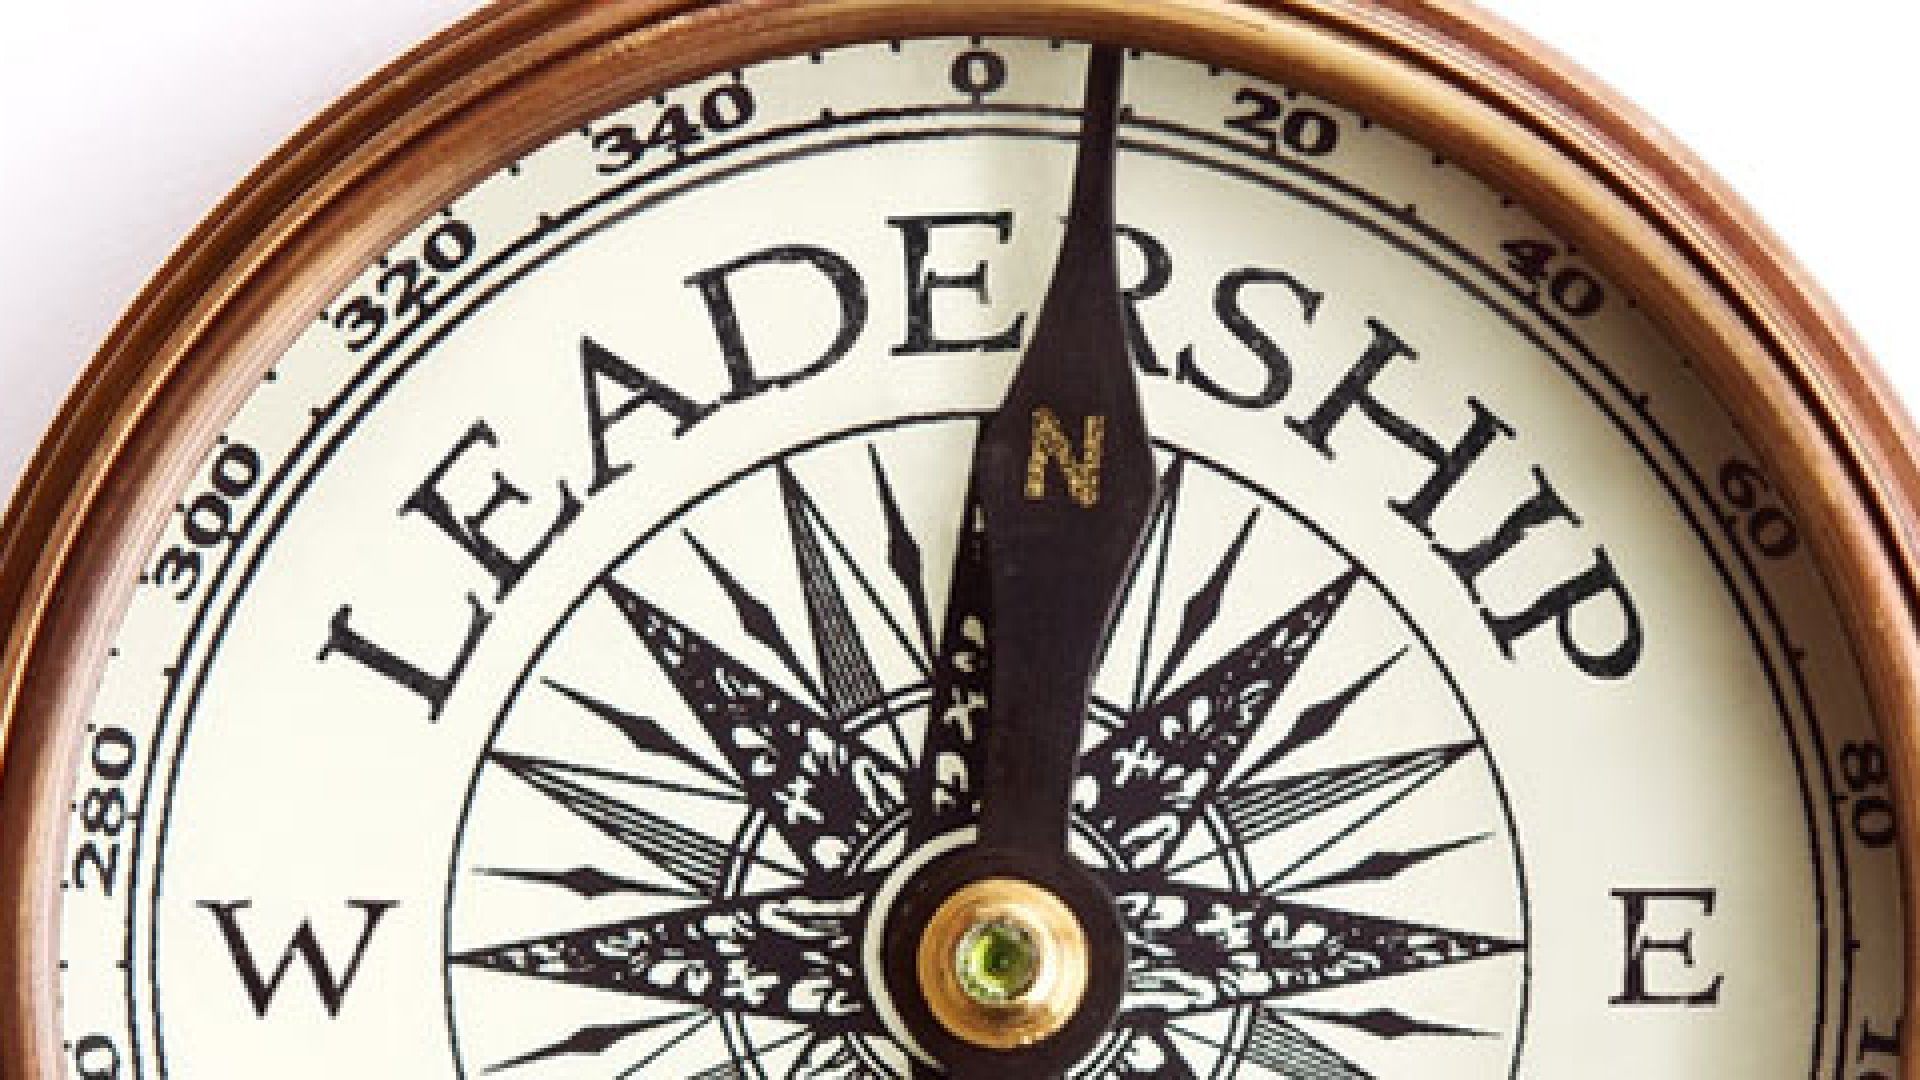 What Do You Use as a Moral Compass?